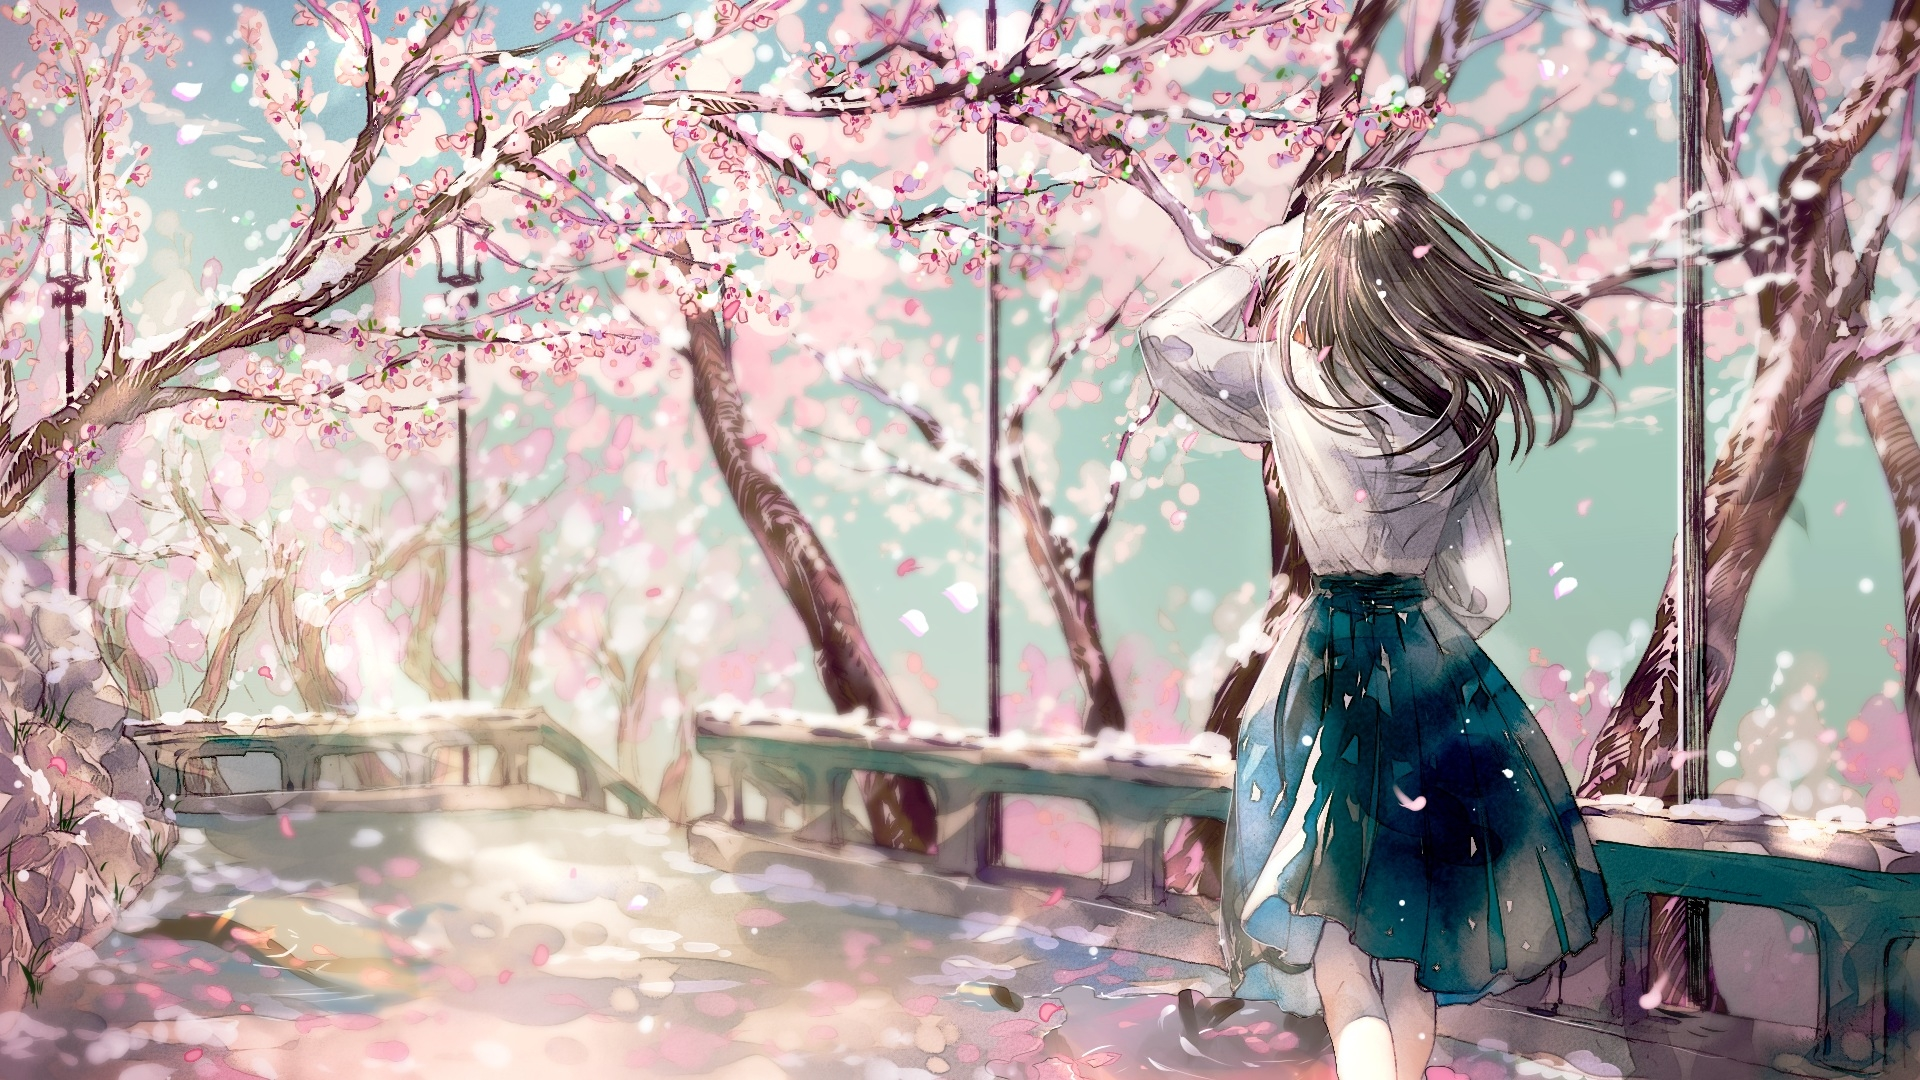 1680x1050 Fall Wallpaper Download 1920x1080 Cherry Blossom Sakura Anime Girl